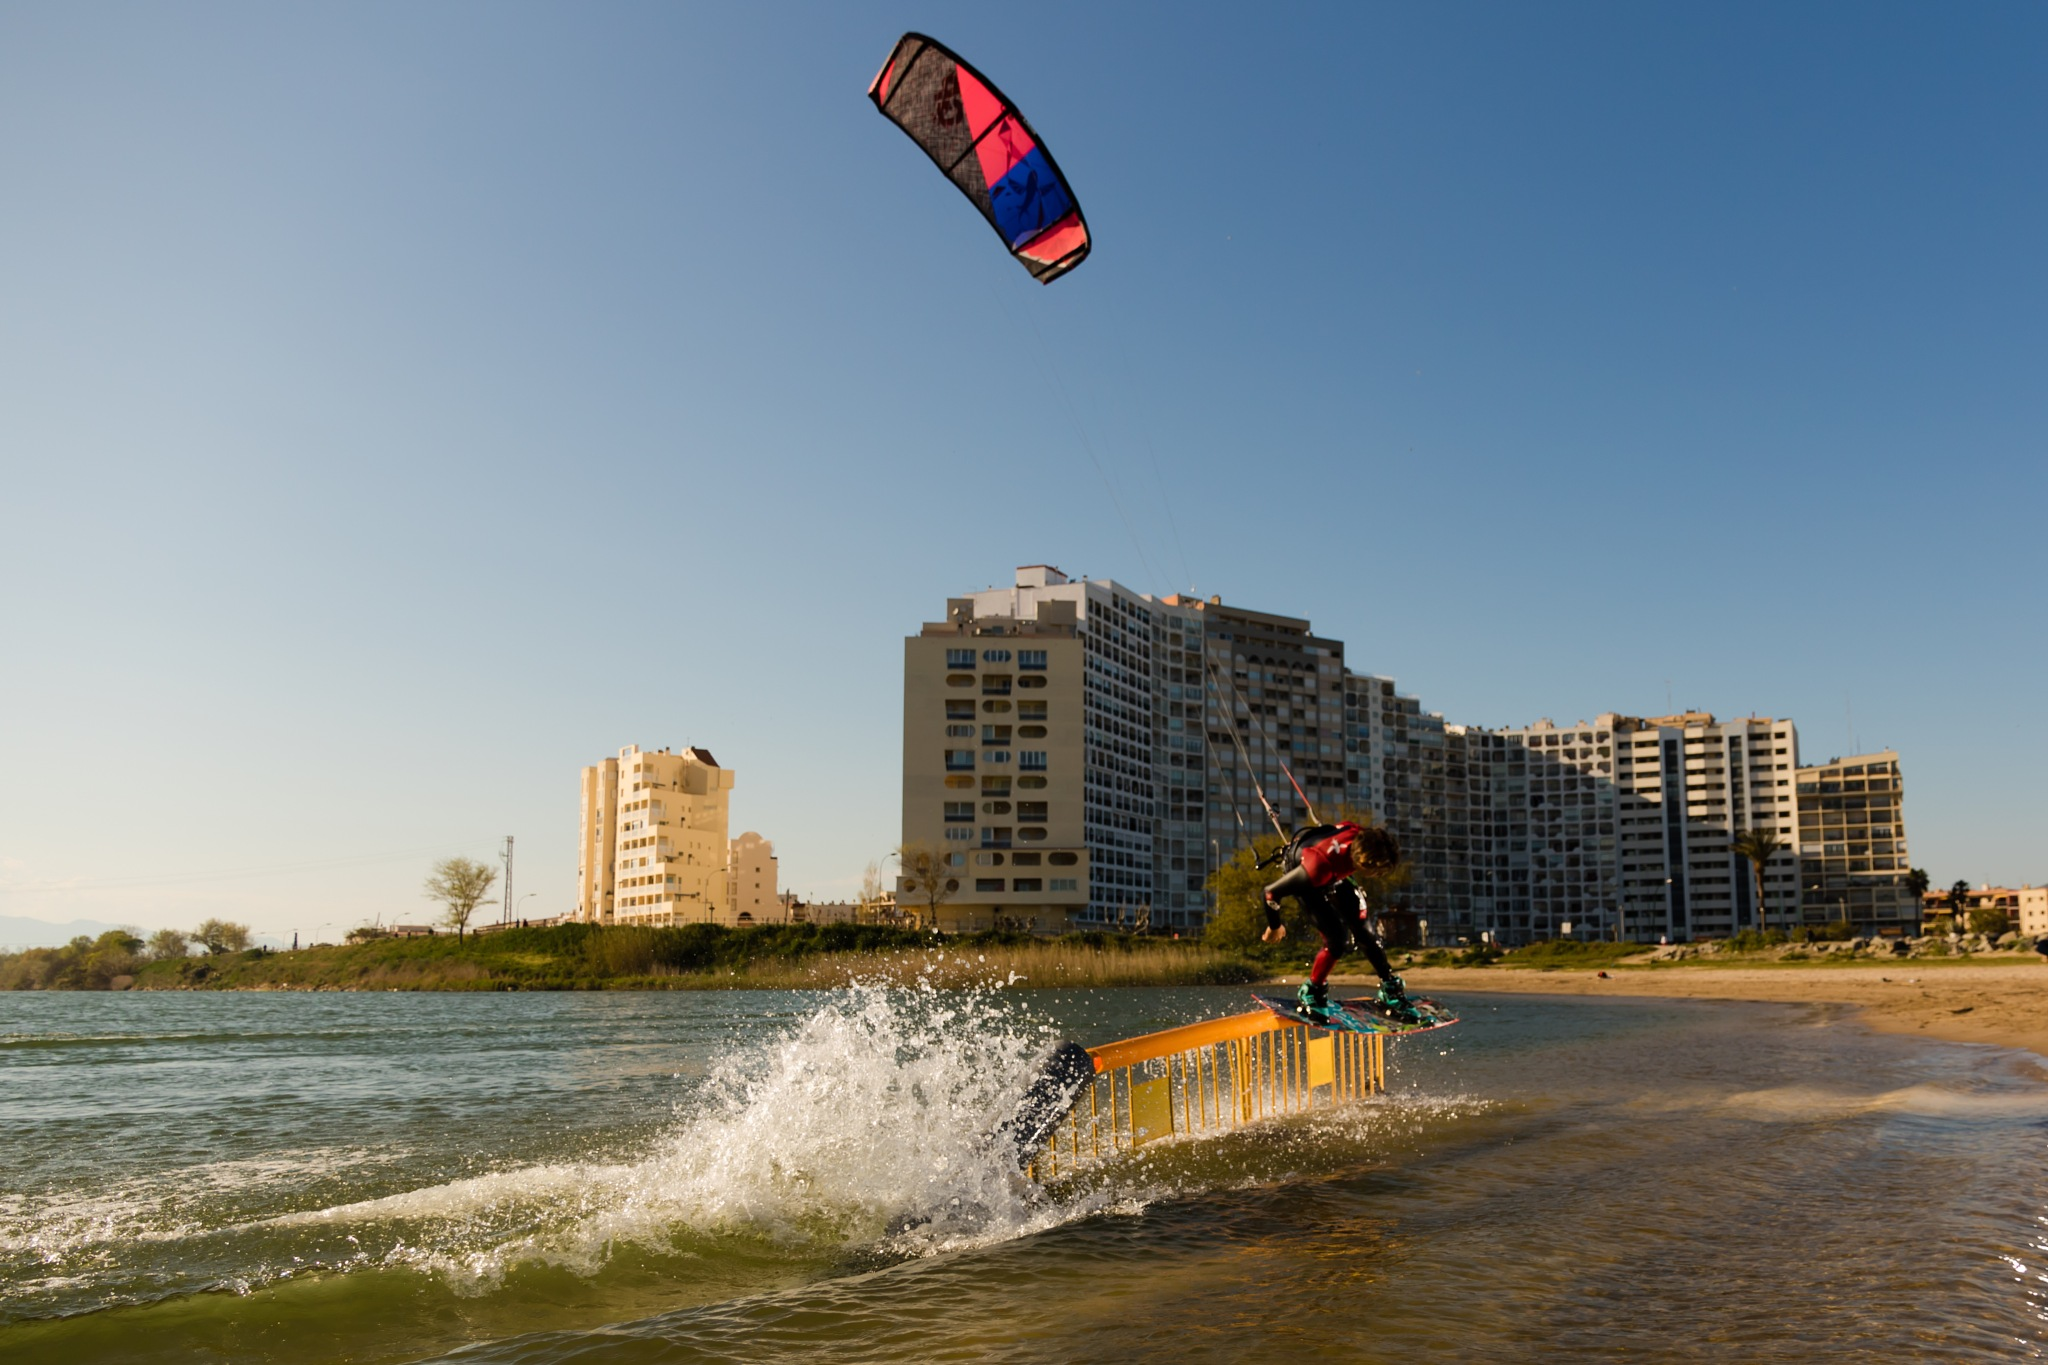 slider kitesurf spain by reinoutsmit